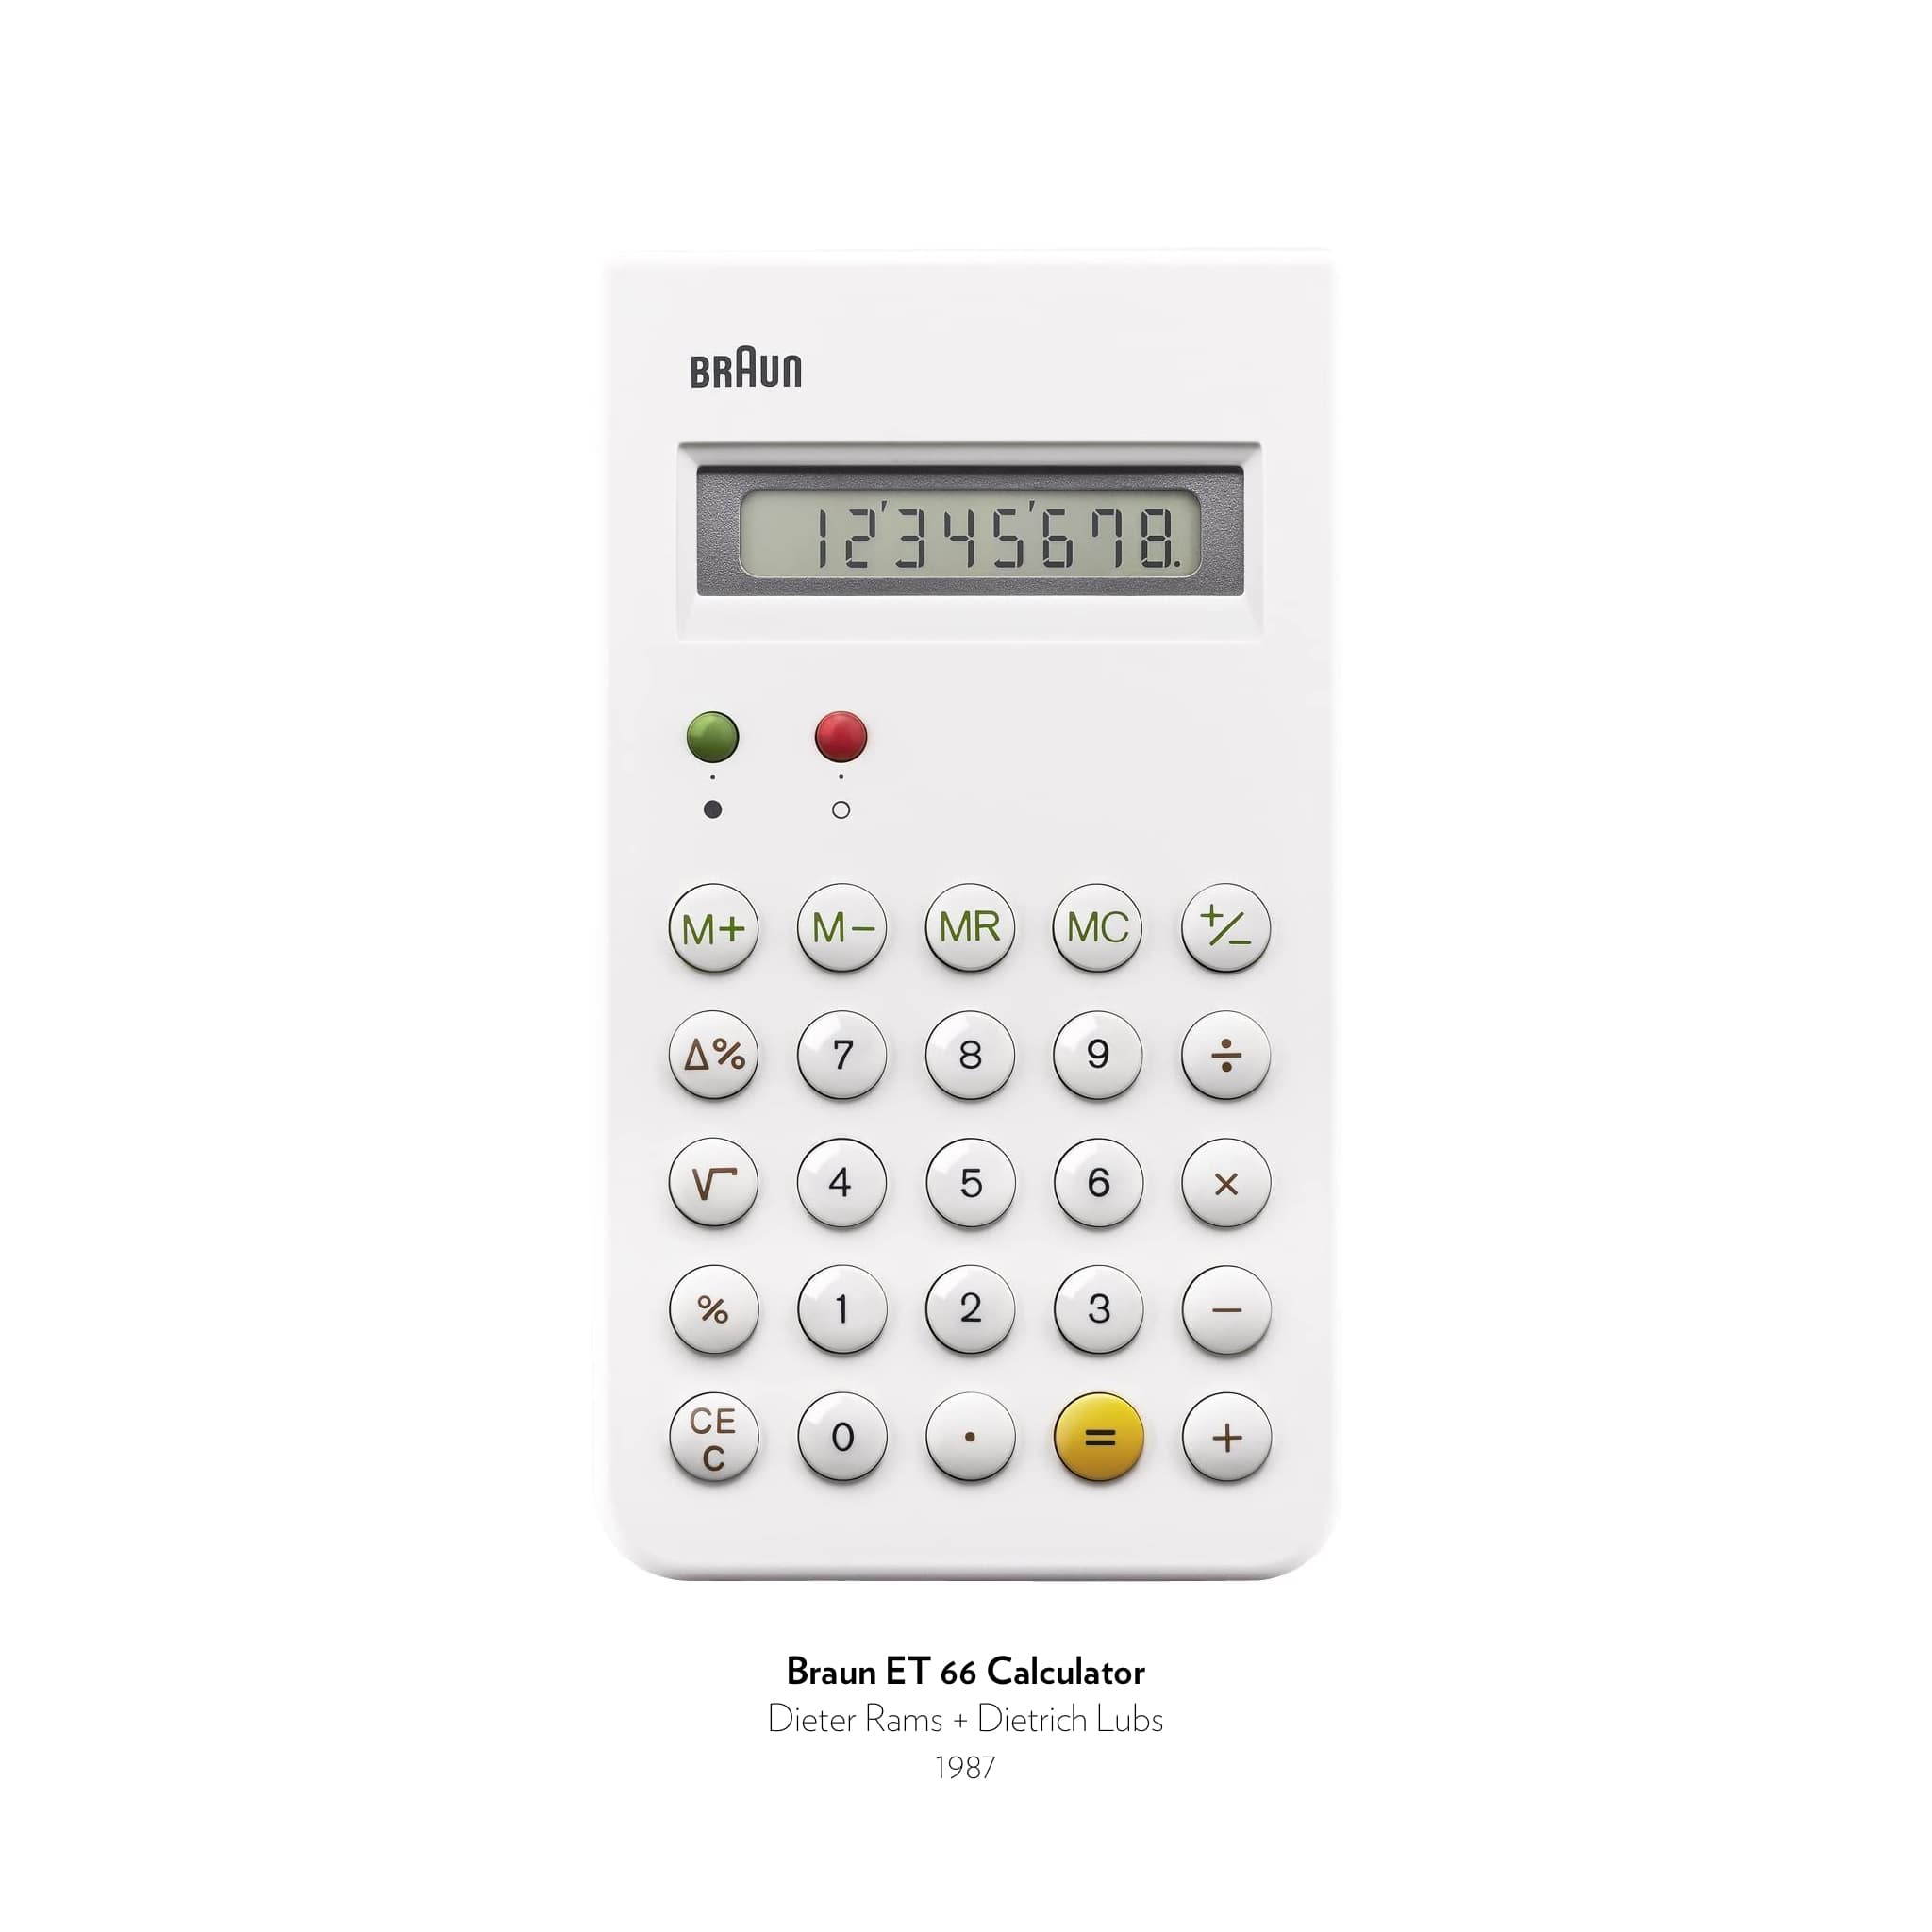 Braun ET 66 Calculator designed by Dieter Rams and Dietrich Lubs in 1987.